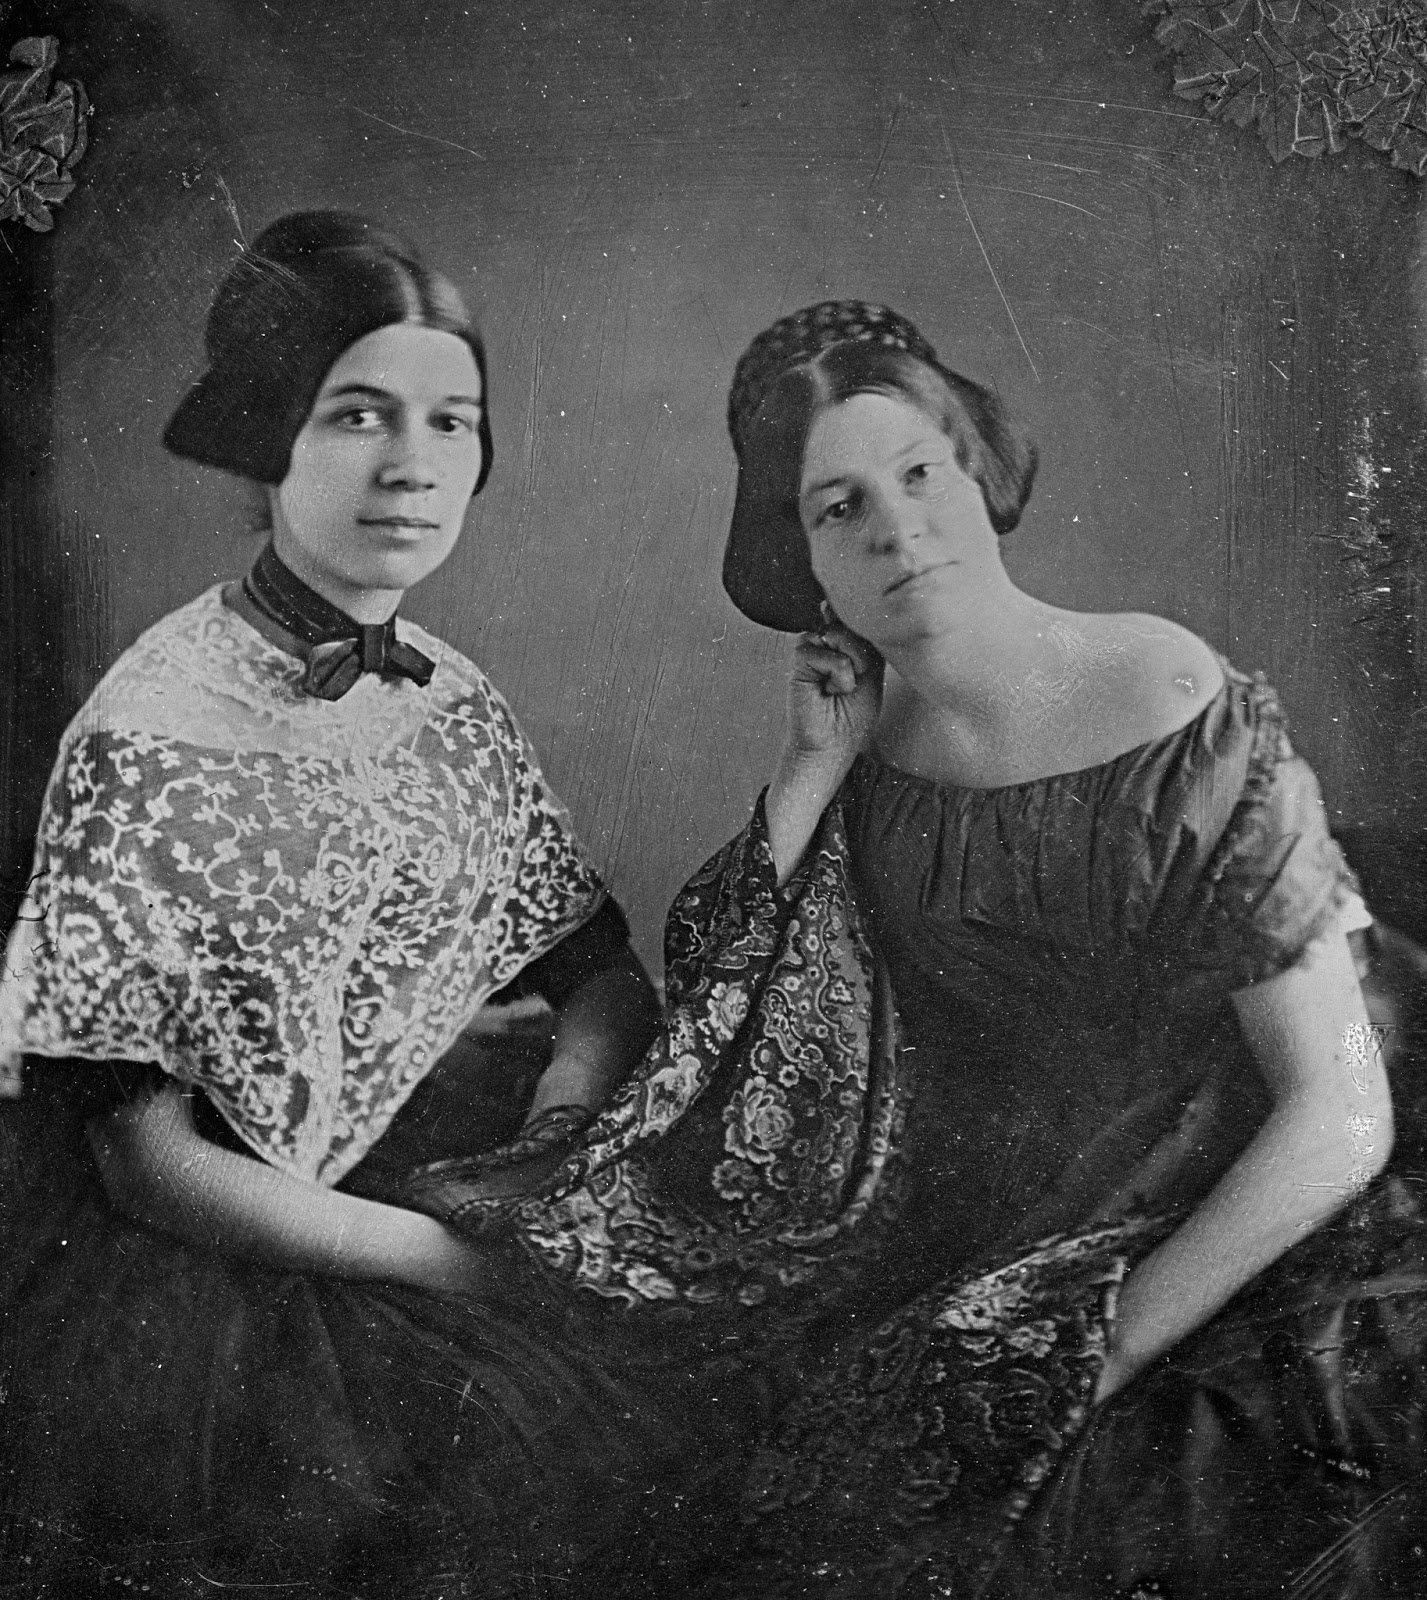 contrast northern and southern women 1840s and 1850s While the market revolution remade many women's 1840s and 1850s in industrial northern of the northern system of commerce over the southern.